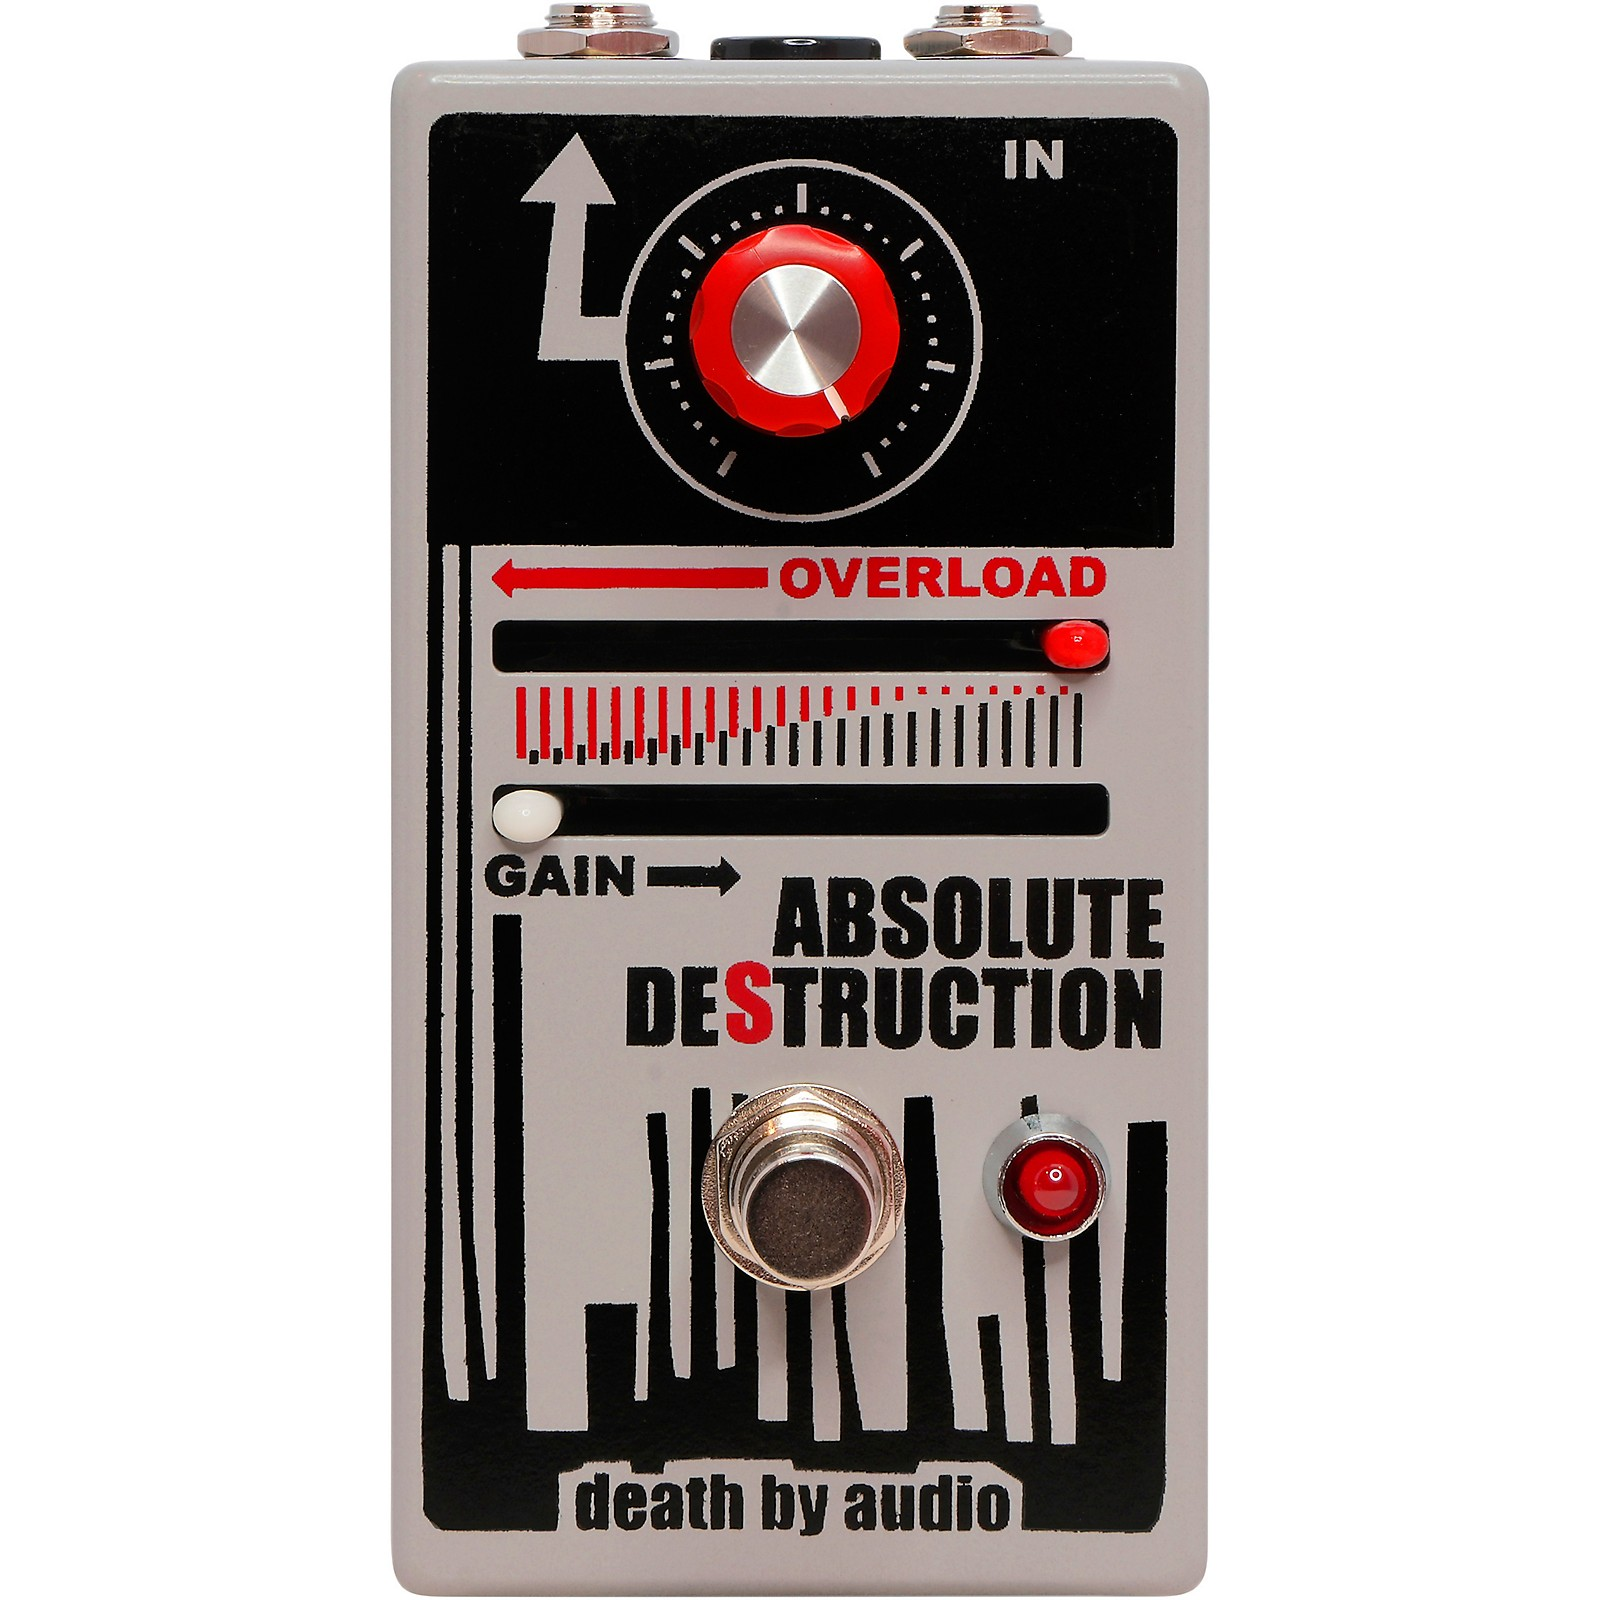 Death By Audio Absolute Destruction Overloading Power Amplifier Distortion Effects Pedal